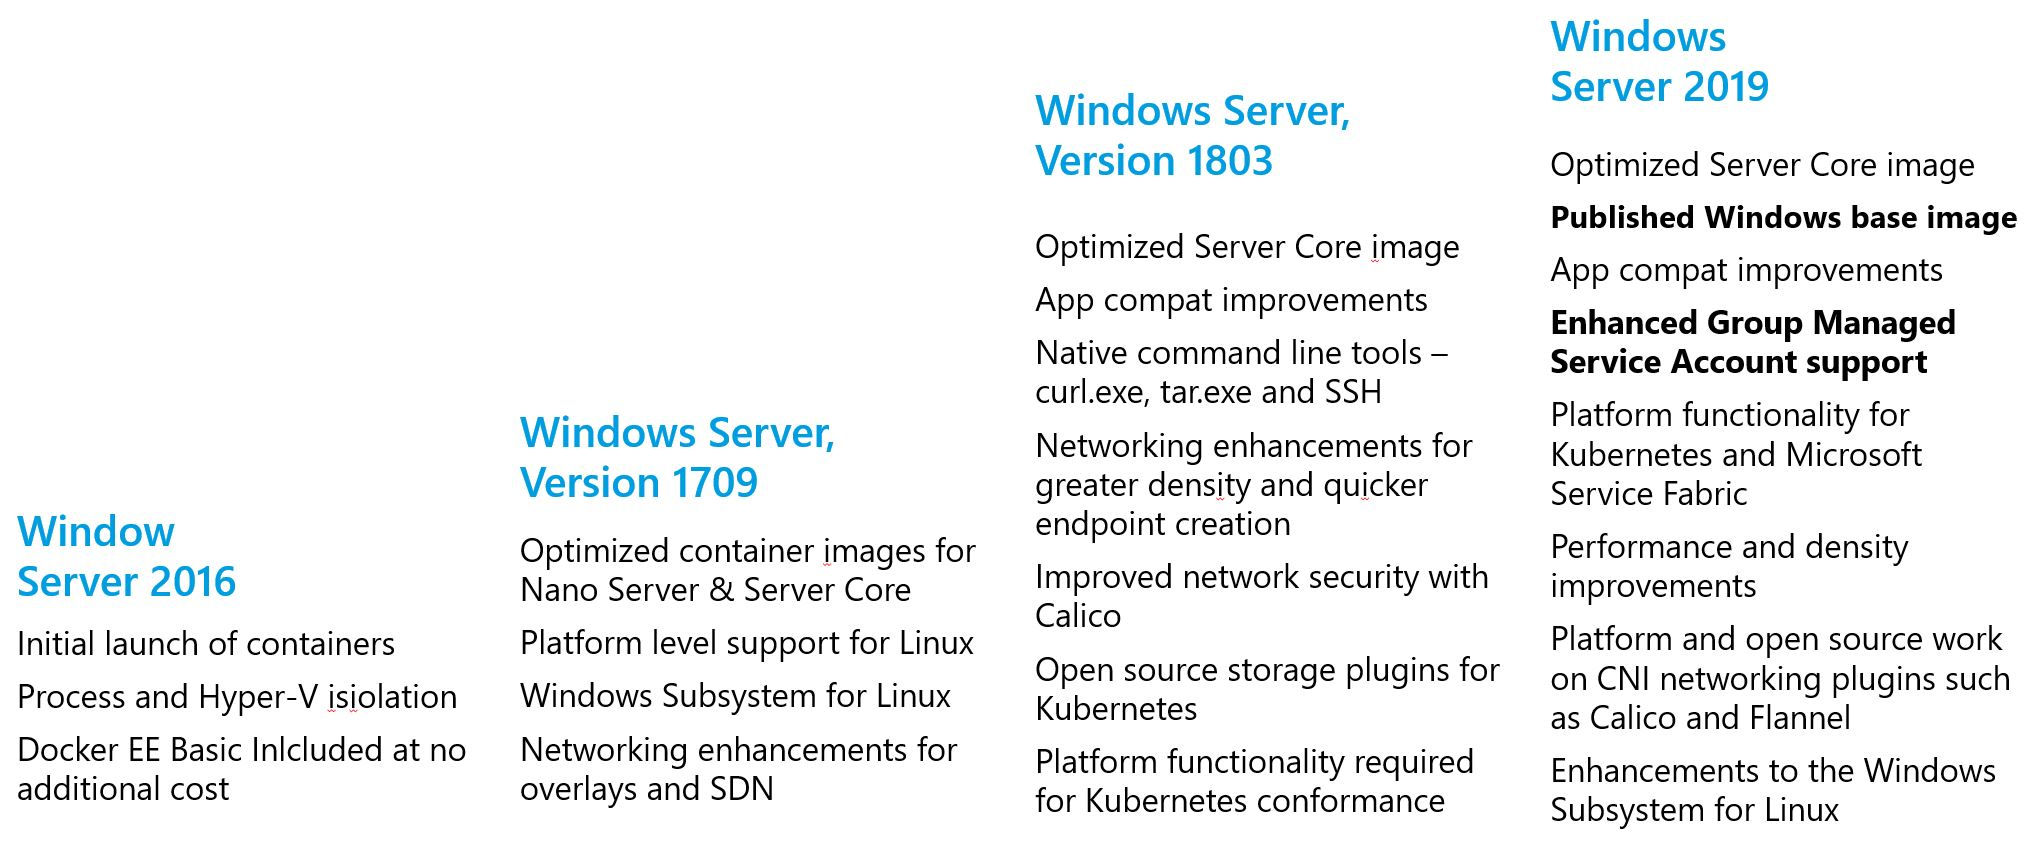 Image of a historical overview of added features to Windows Server in regards to containers.